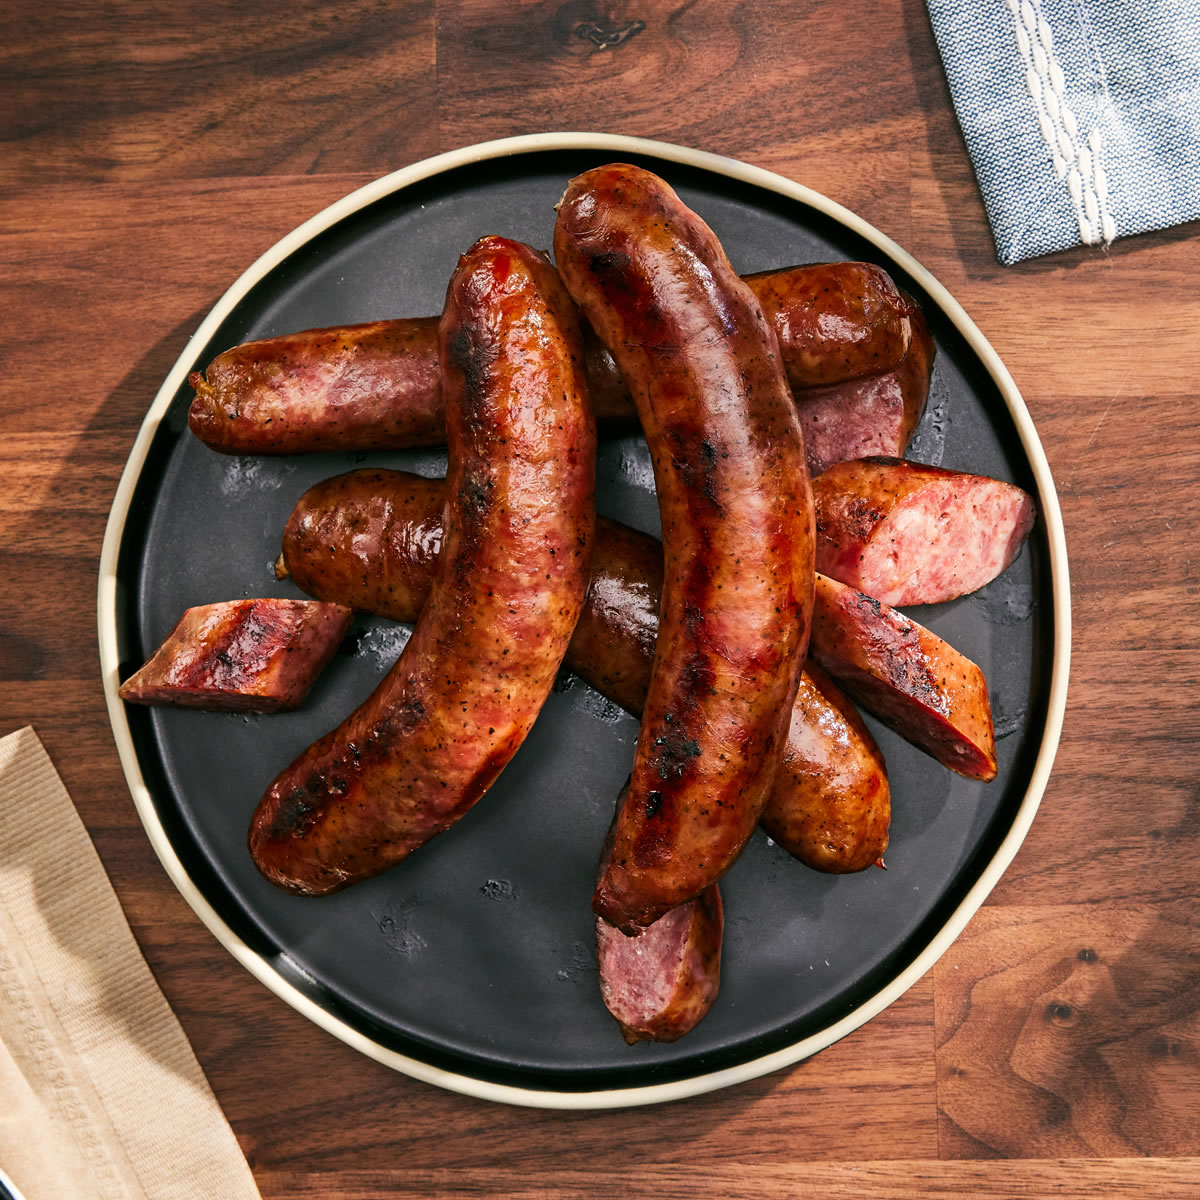 Barbecue Sausage 3 to 7 (1 lb) Packs